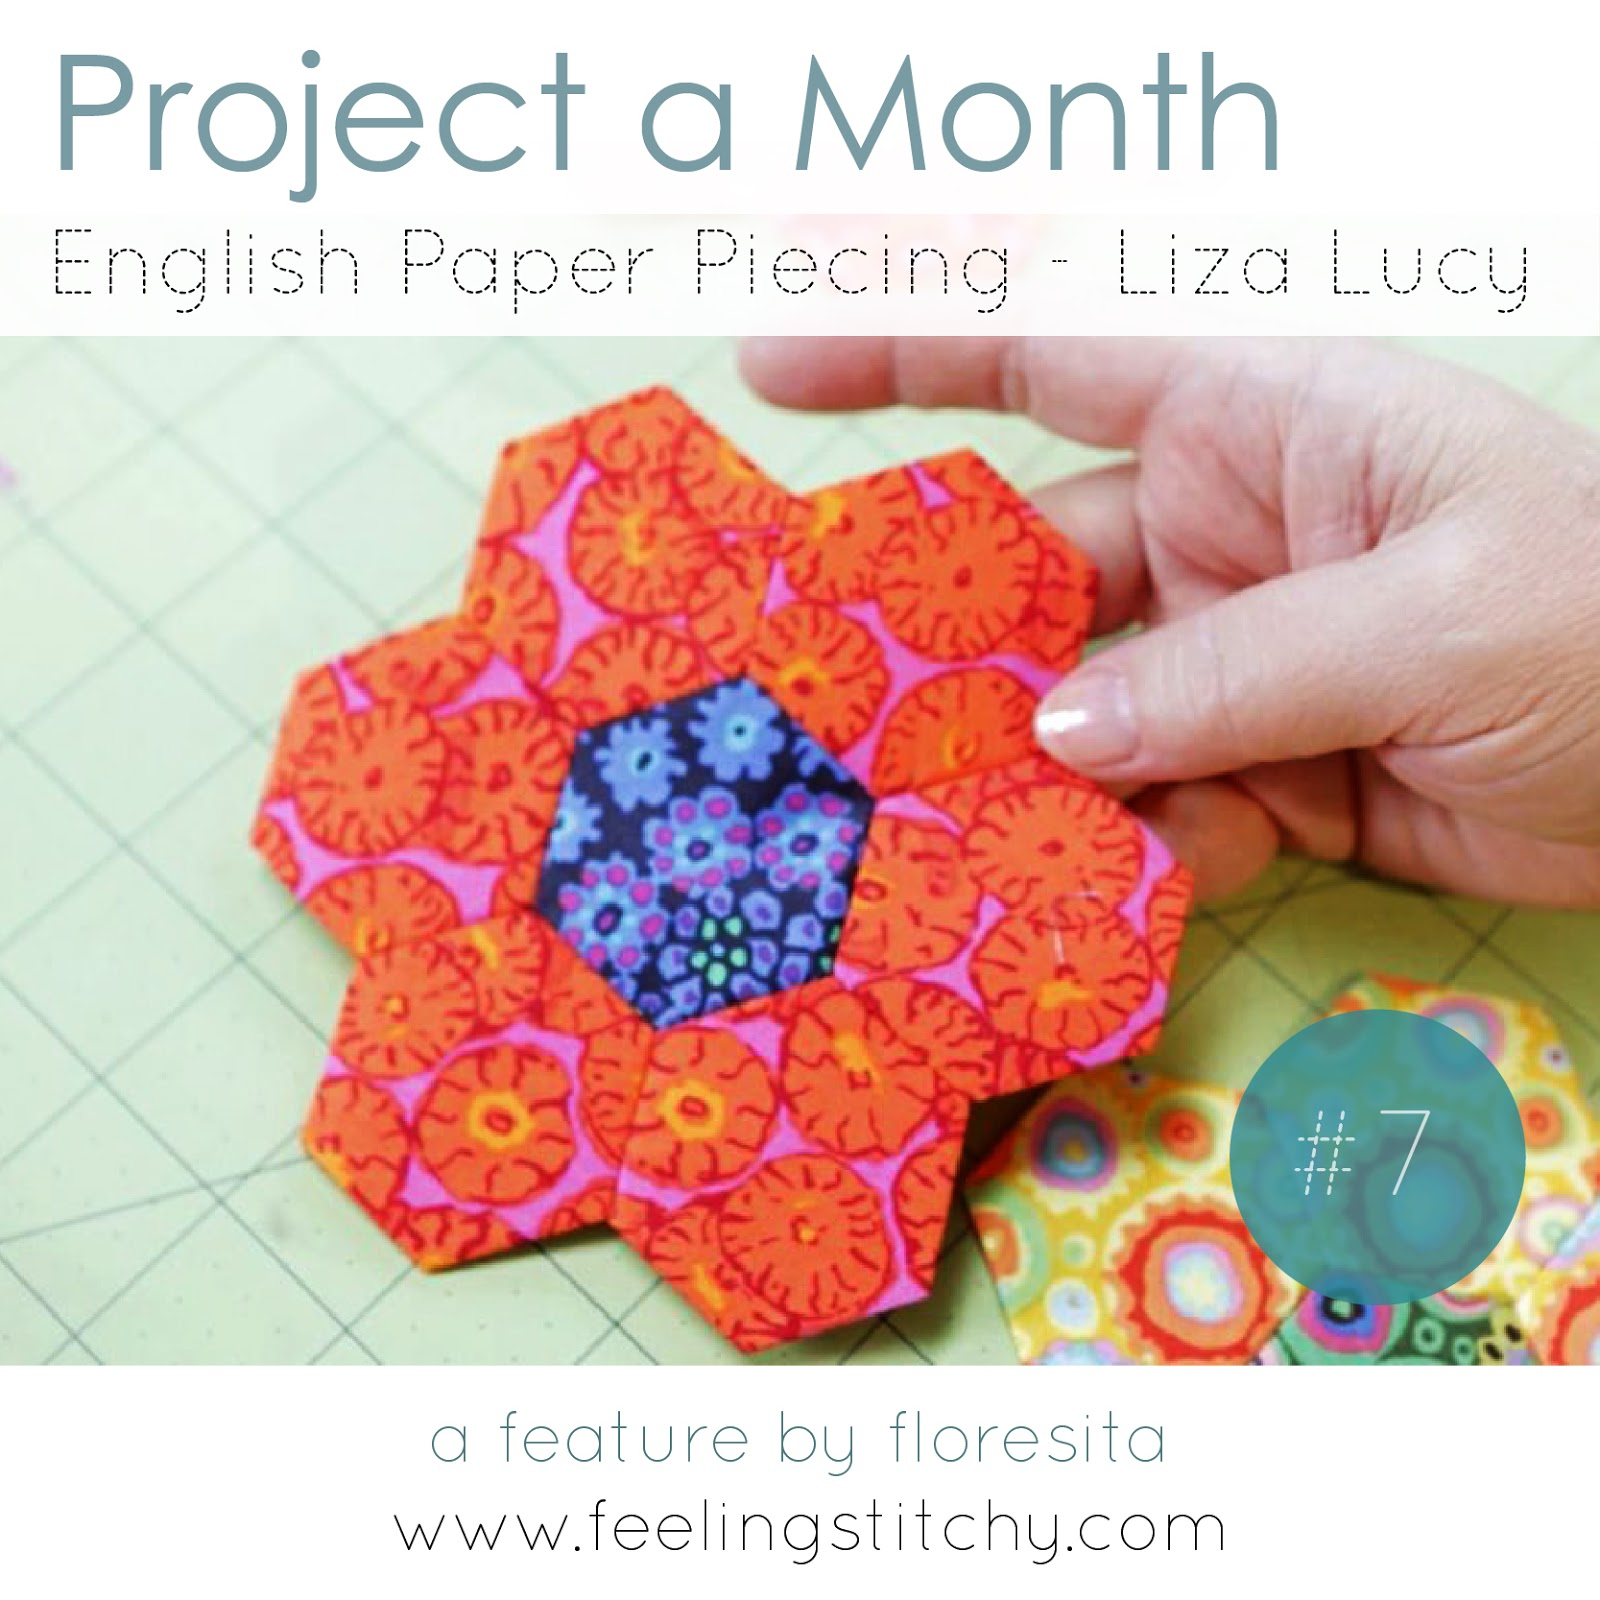 Project a Month 7 - English Paper Piecing a Creativebug class with Liza Lucy as featured by floresita on Feeling Stitchy